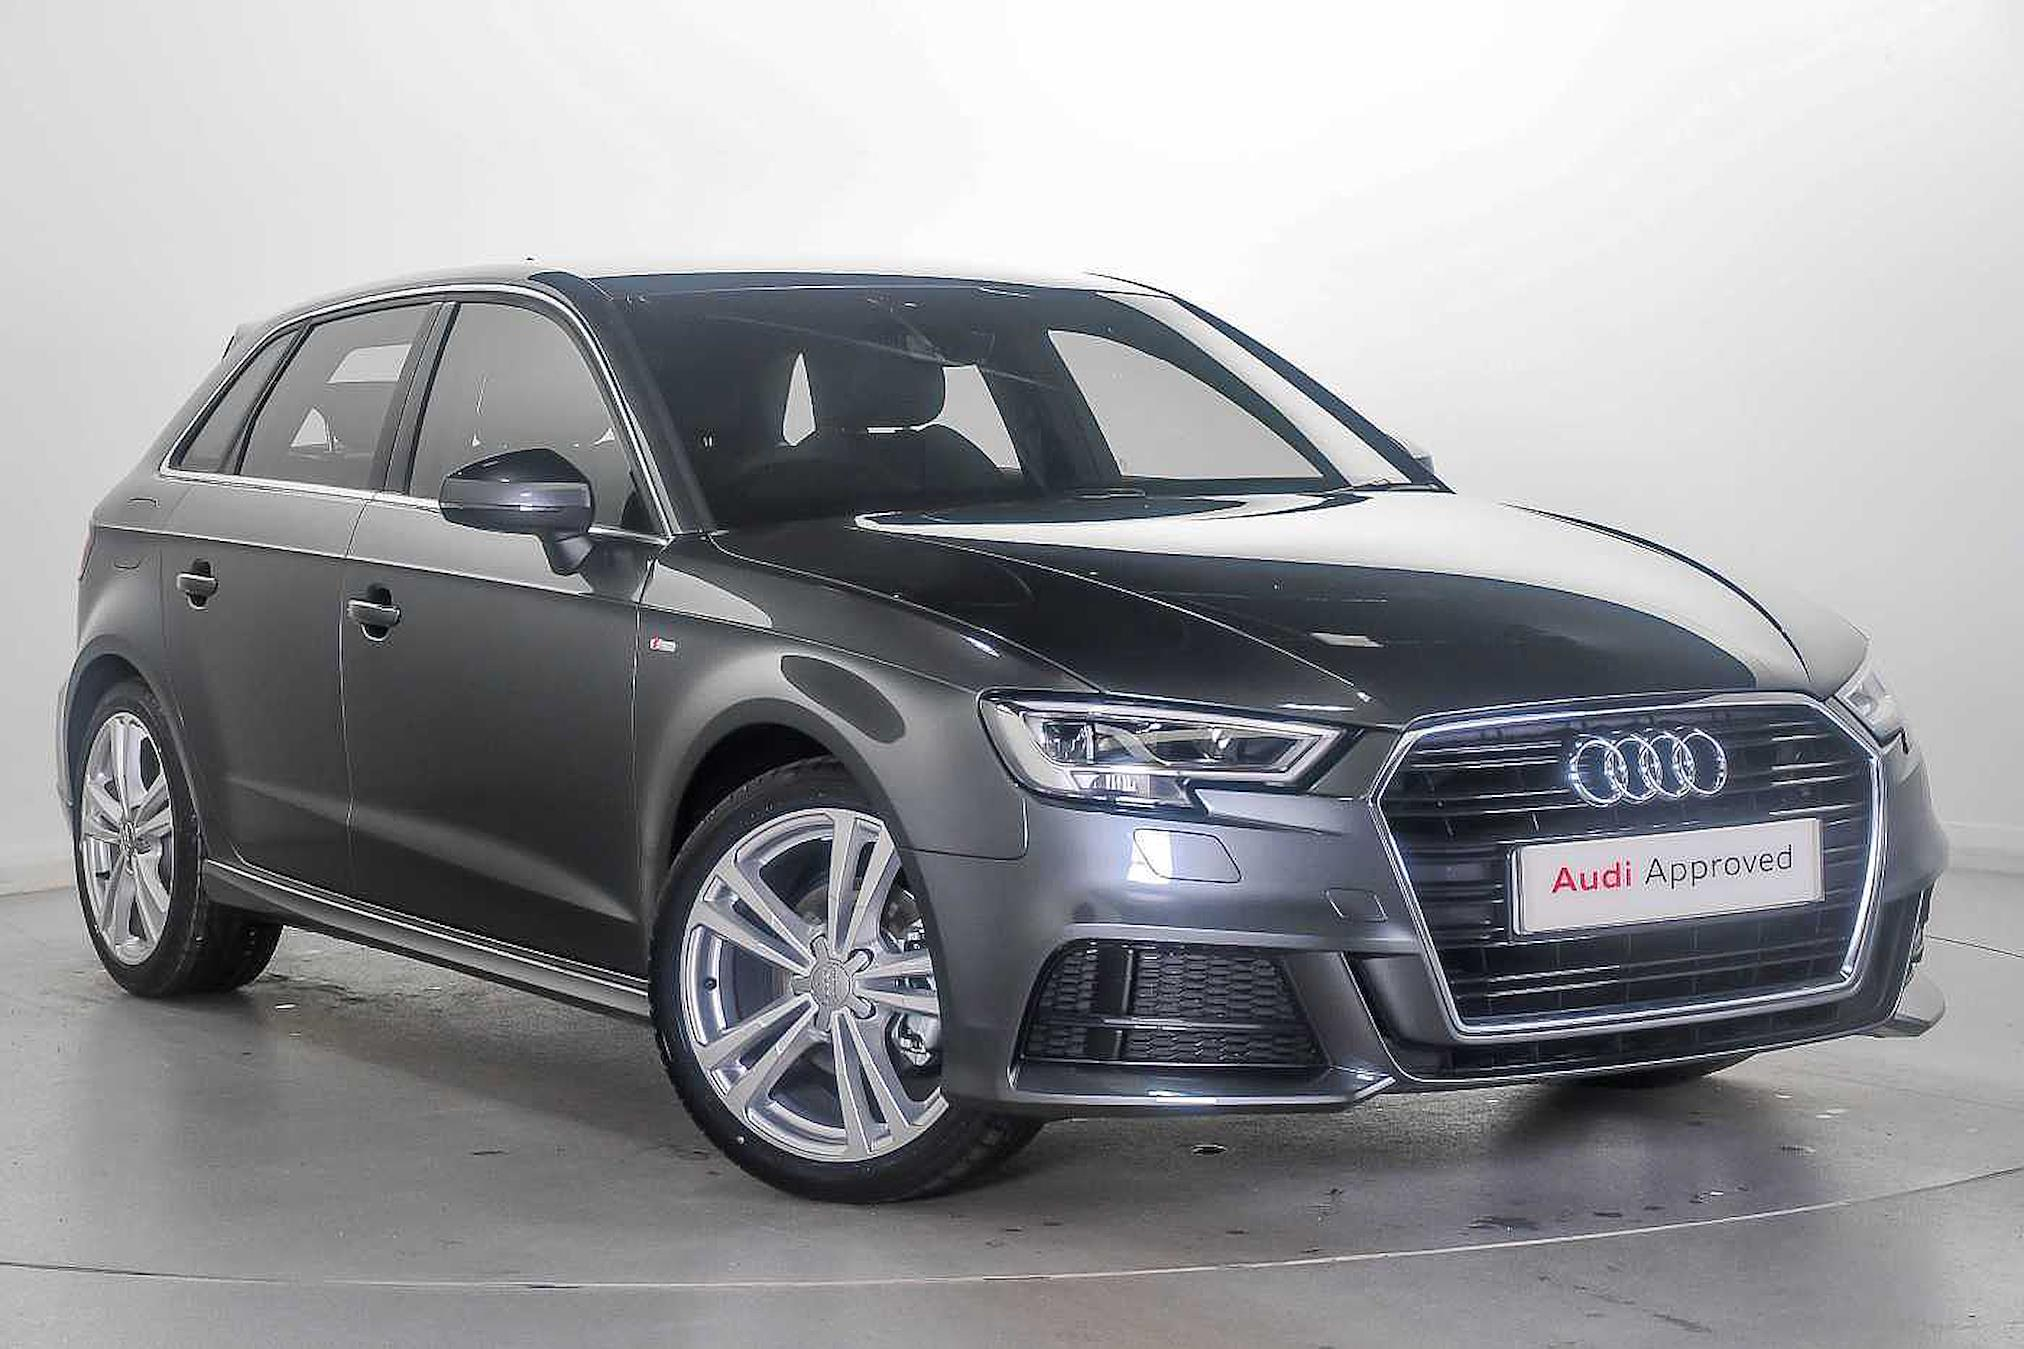 Nearly New A3 Audi 30 Tfsi 116 S Line 5dr 2019 Lookers